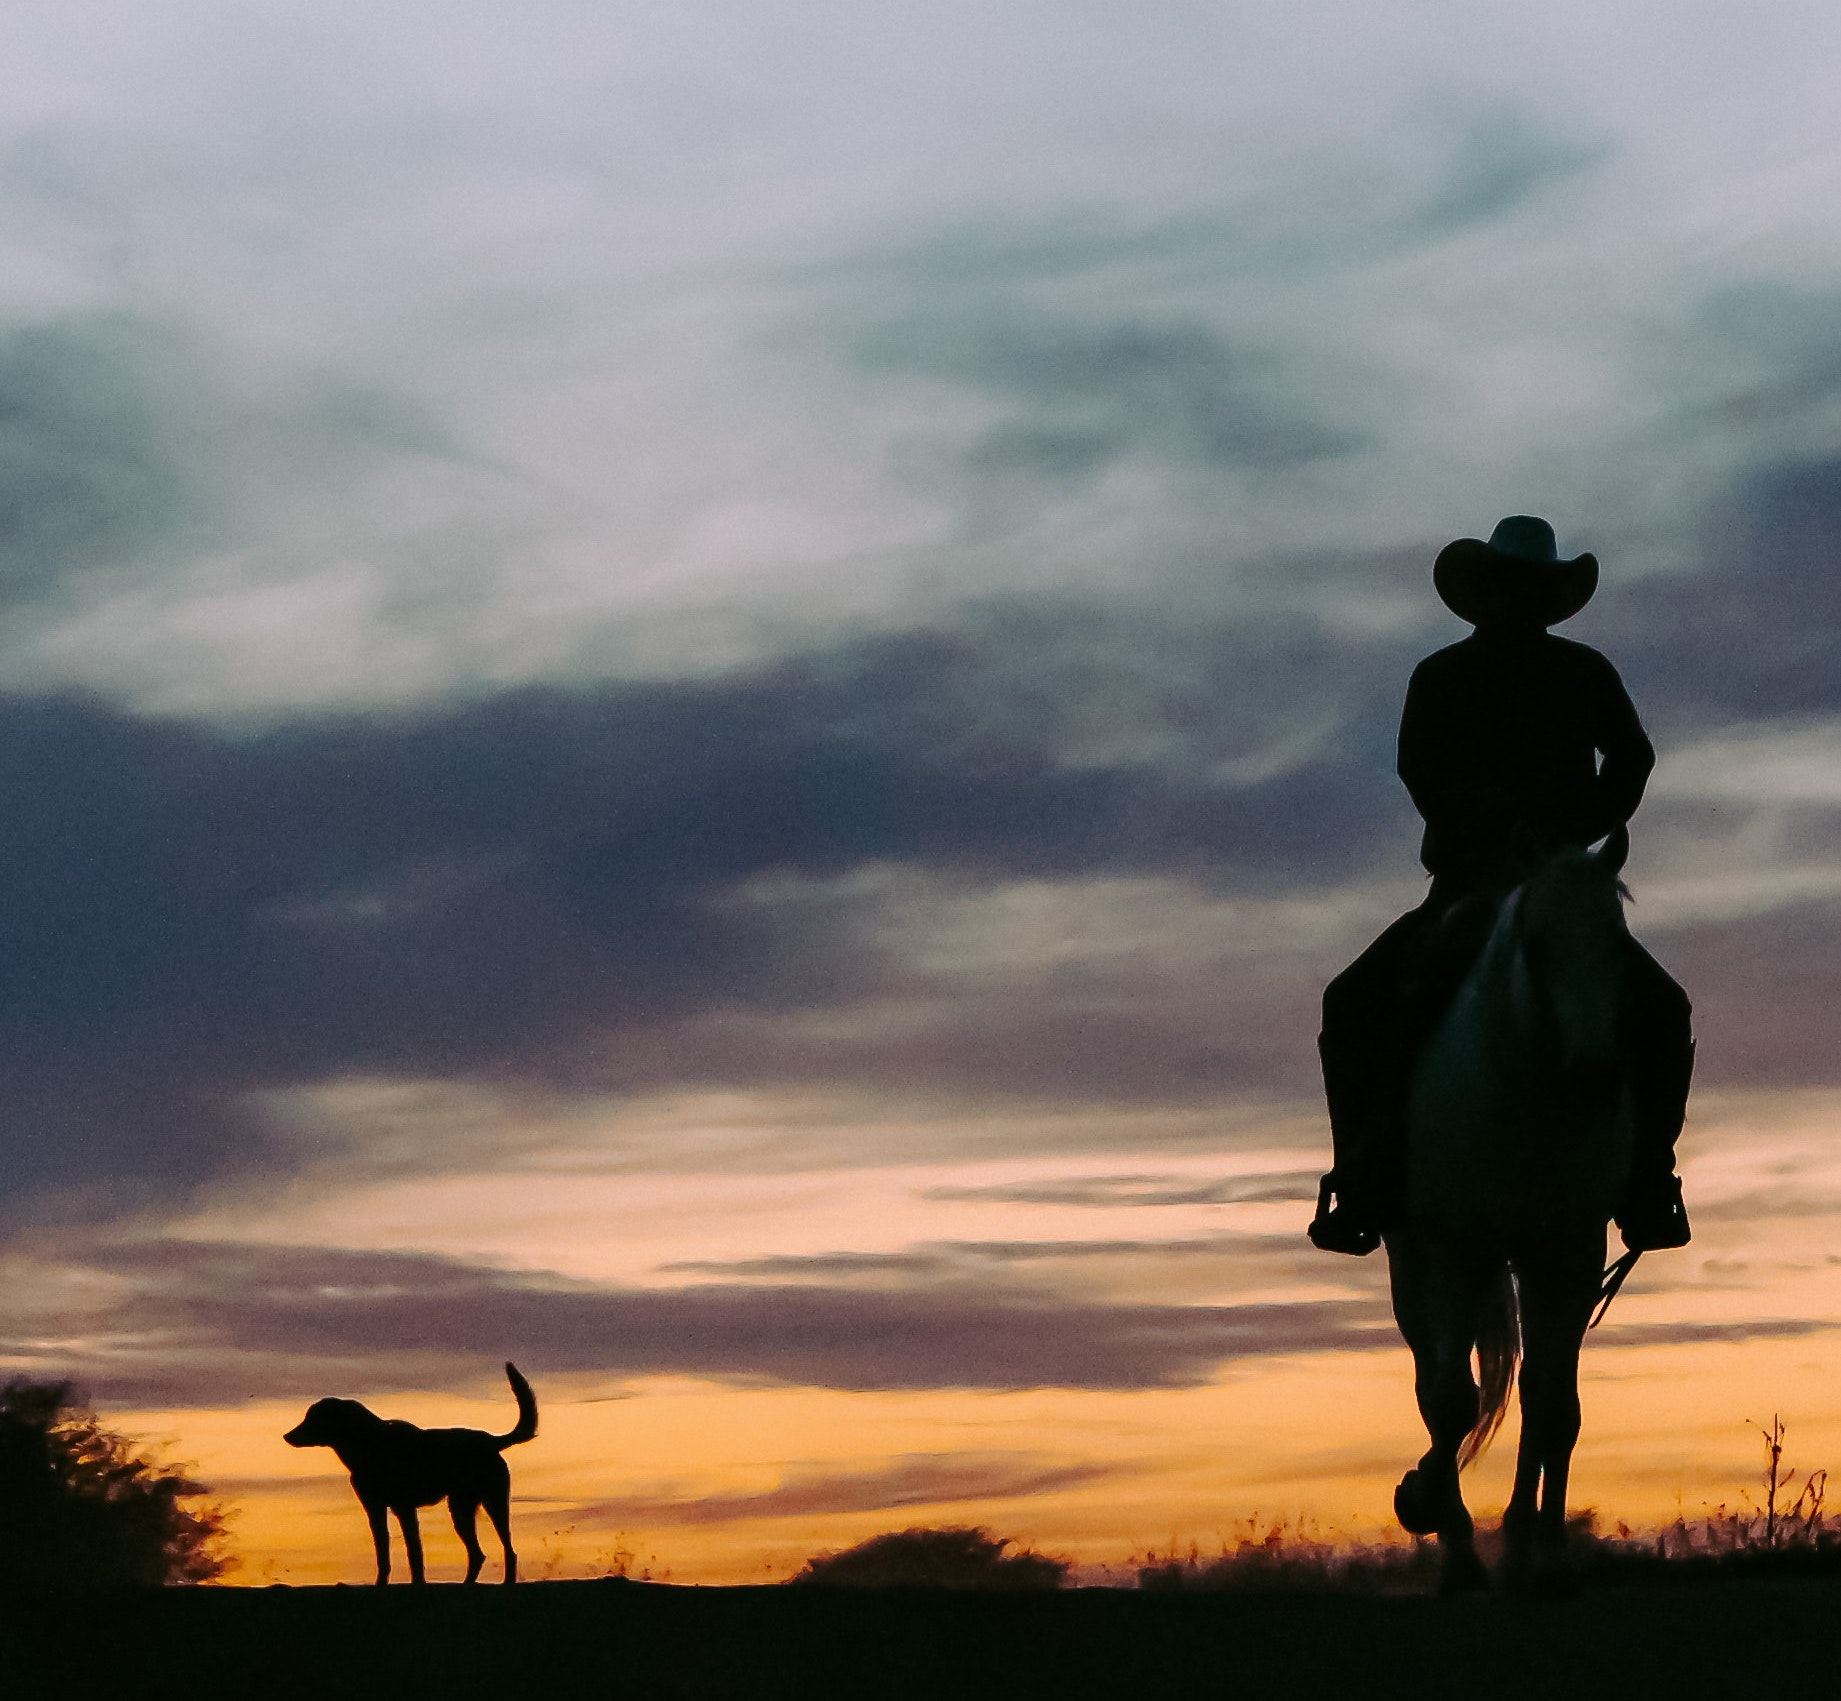 https://www.pexels.com/photo/silhouette-of-person-riding-horse-2618372/